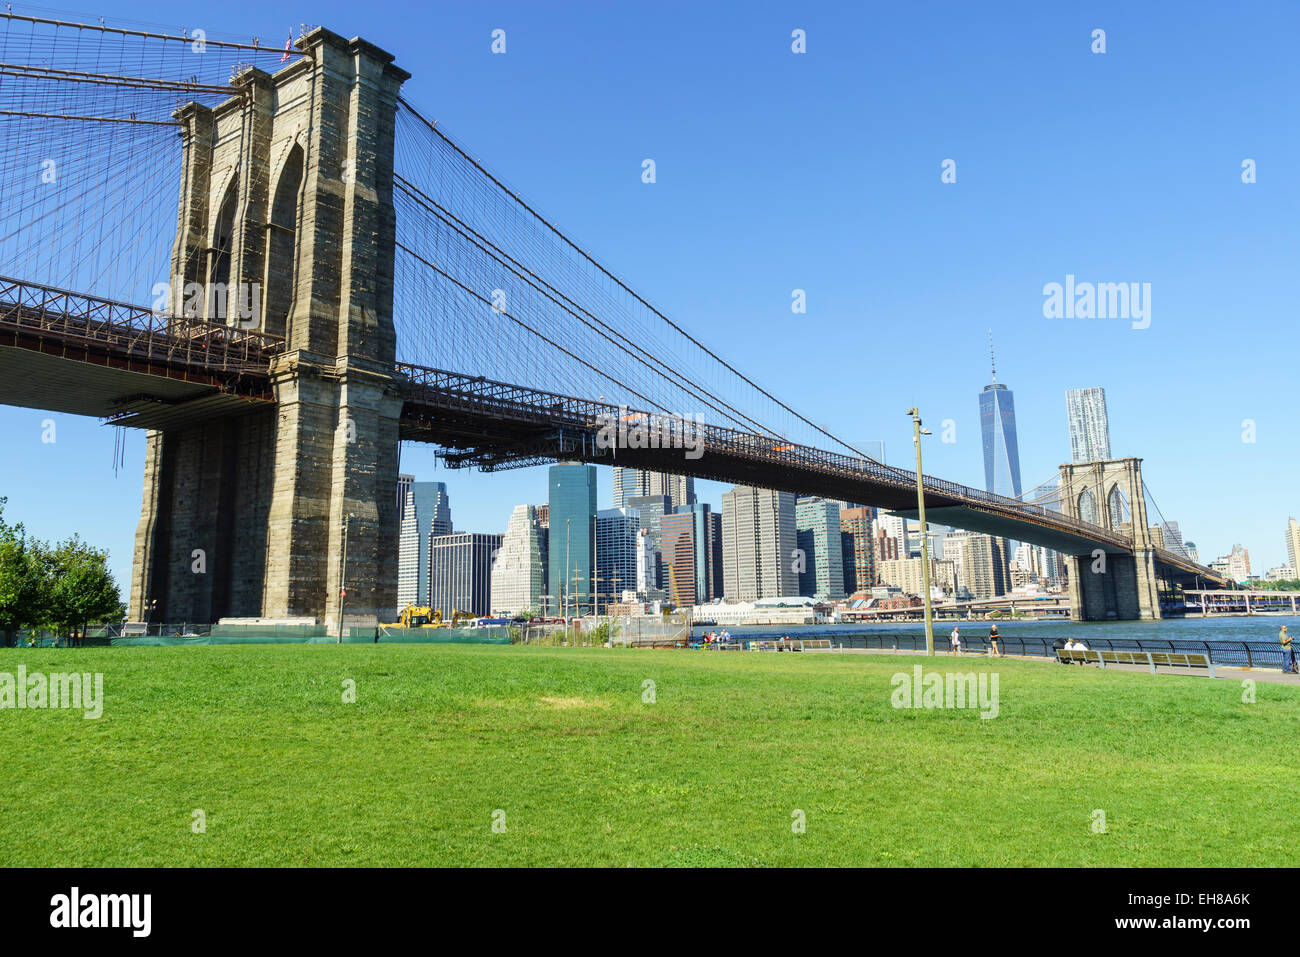 Brooklyn Bridge and Lower Manhattan skyscrapers including One World Trade Center, New York City, New York, USA - Stock Image